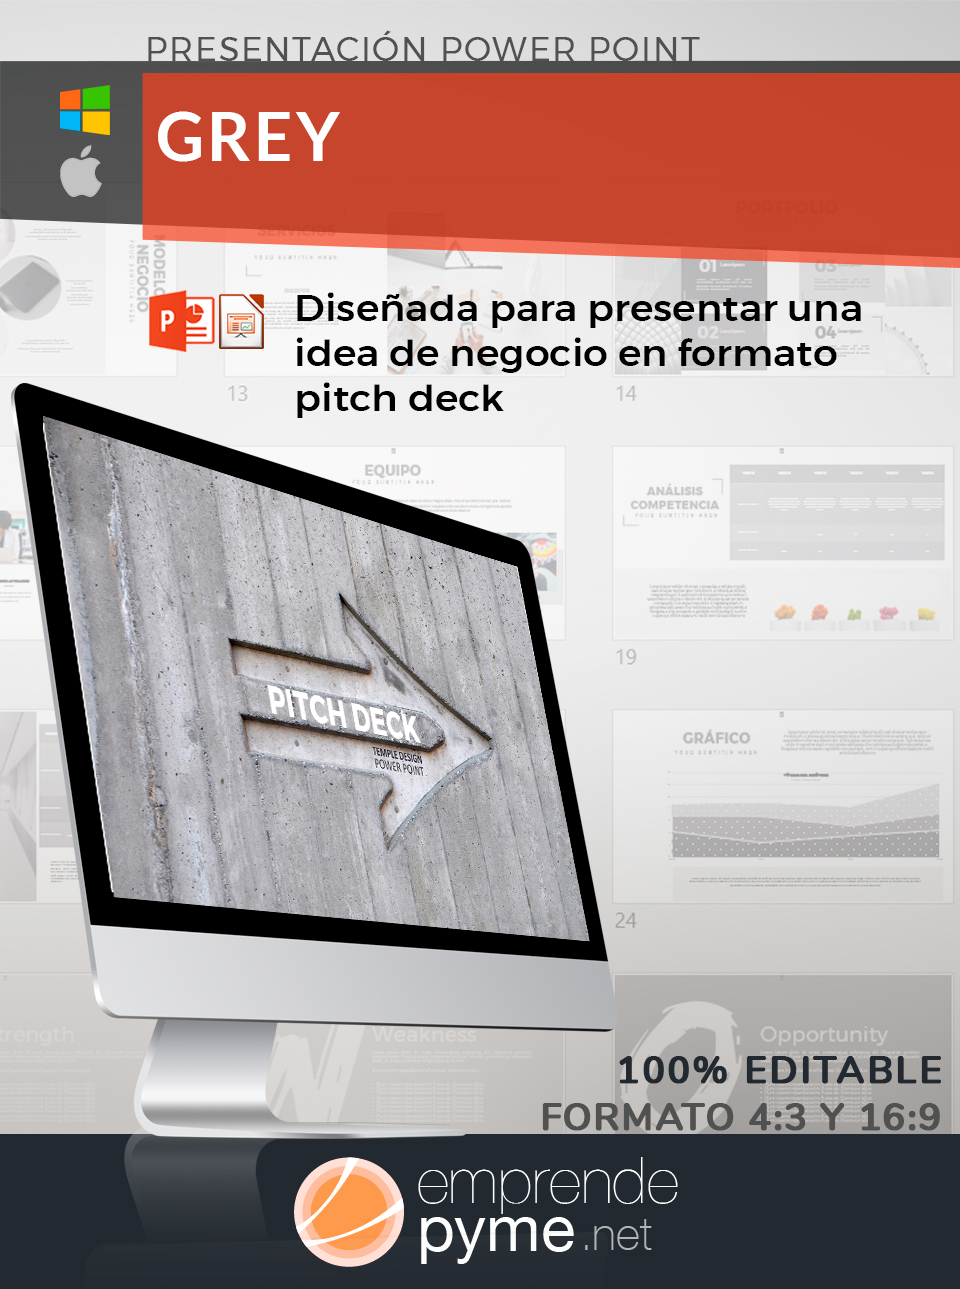 Hacer pitch deck en power point